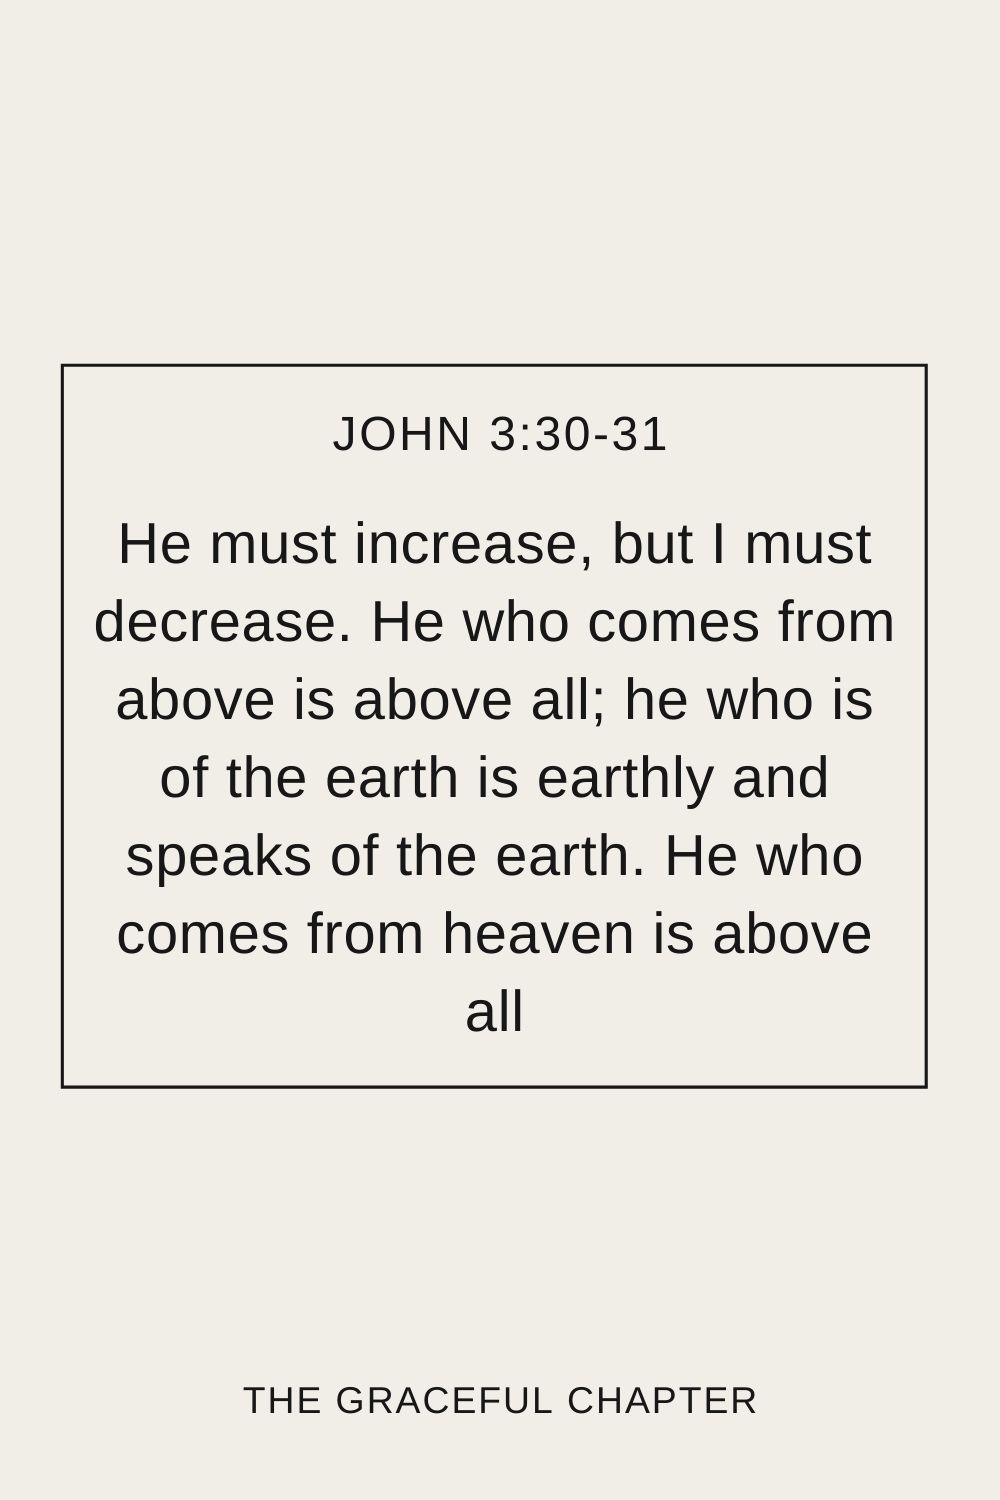 He must increase, but I must decrease. He who comes from above is above all; he who is of the earth is earthly and speaks of the earth. He who comes from heaven is above all John 3:30-31